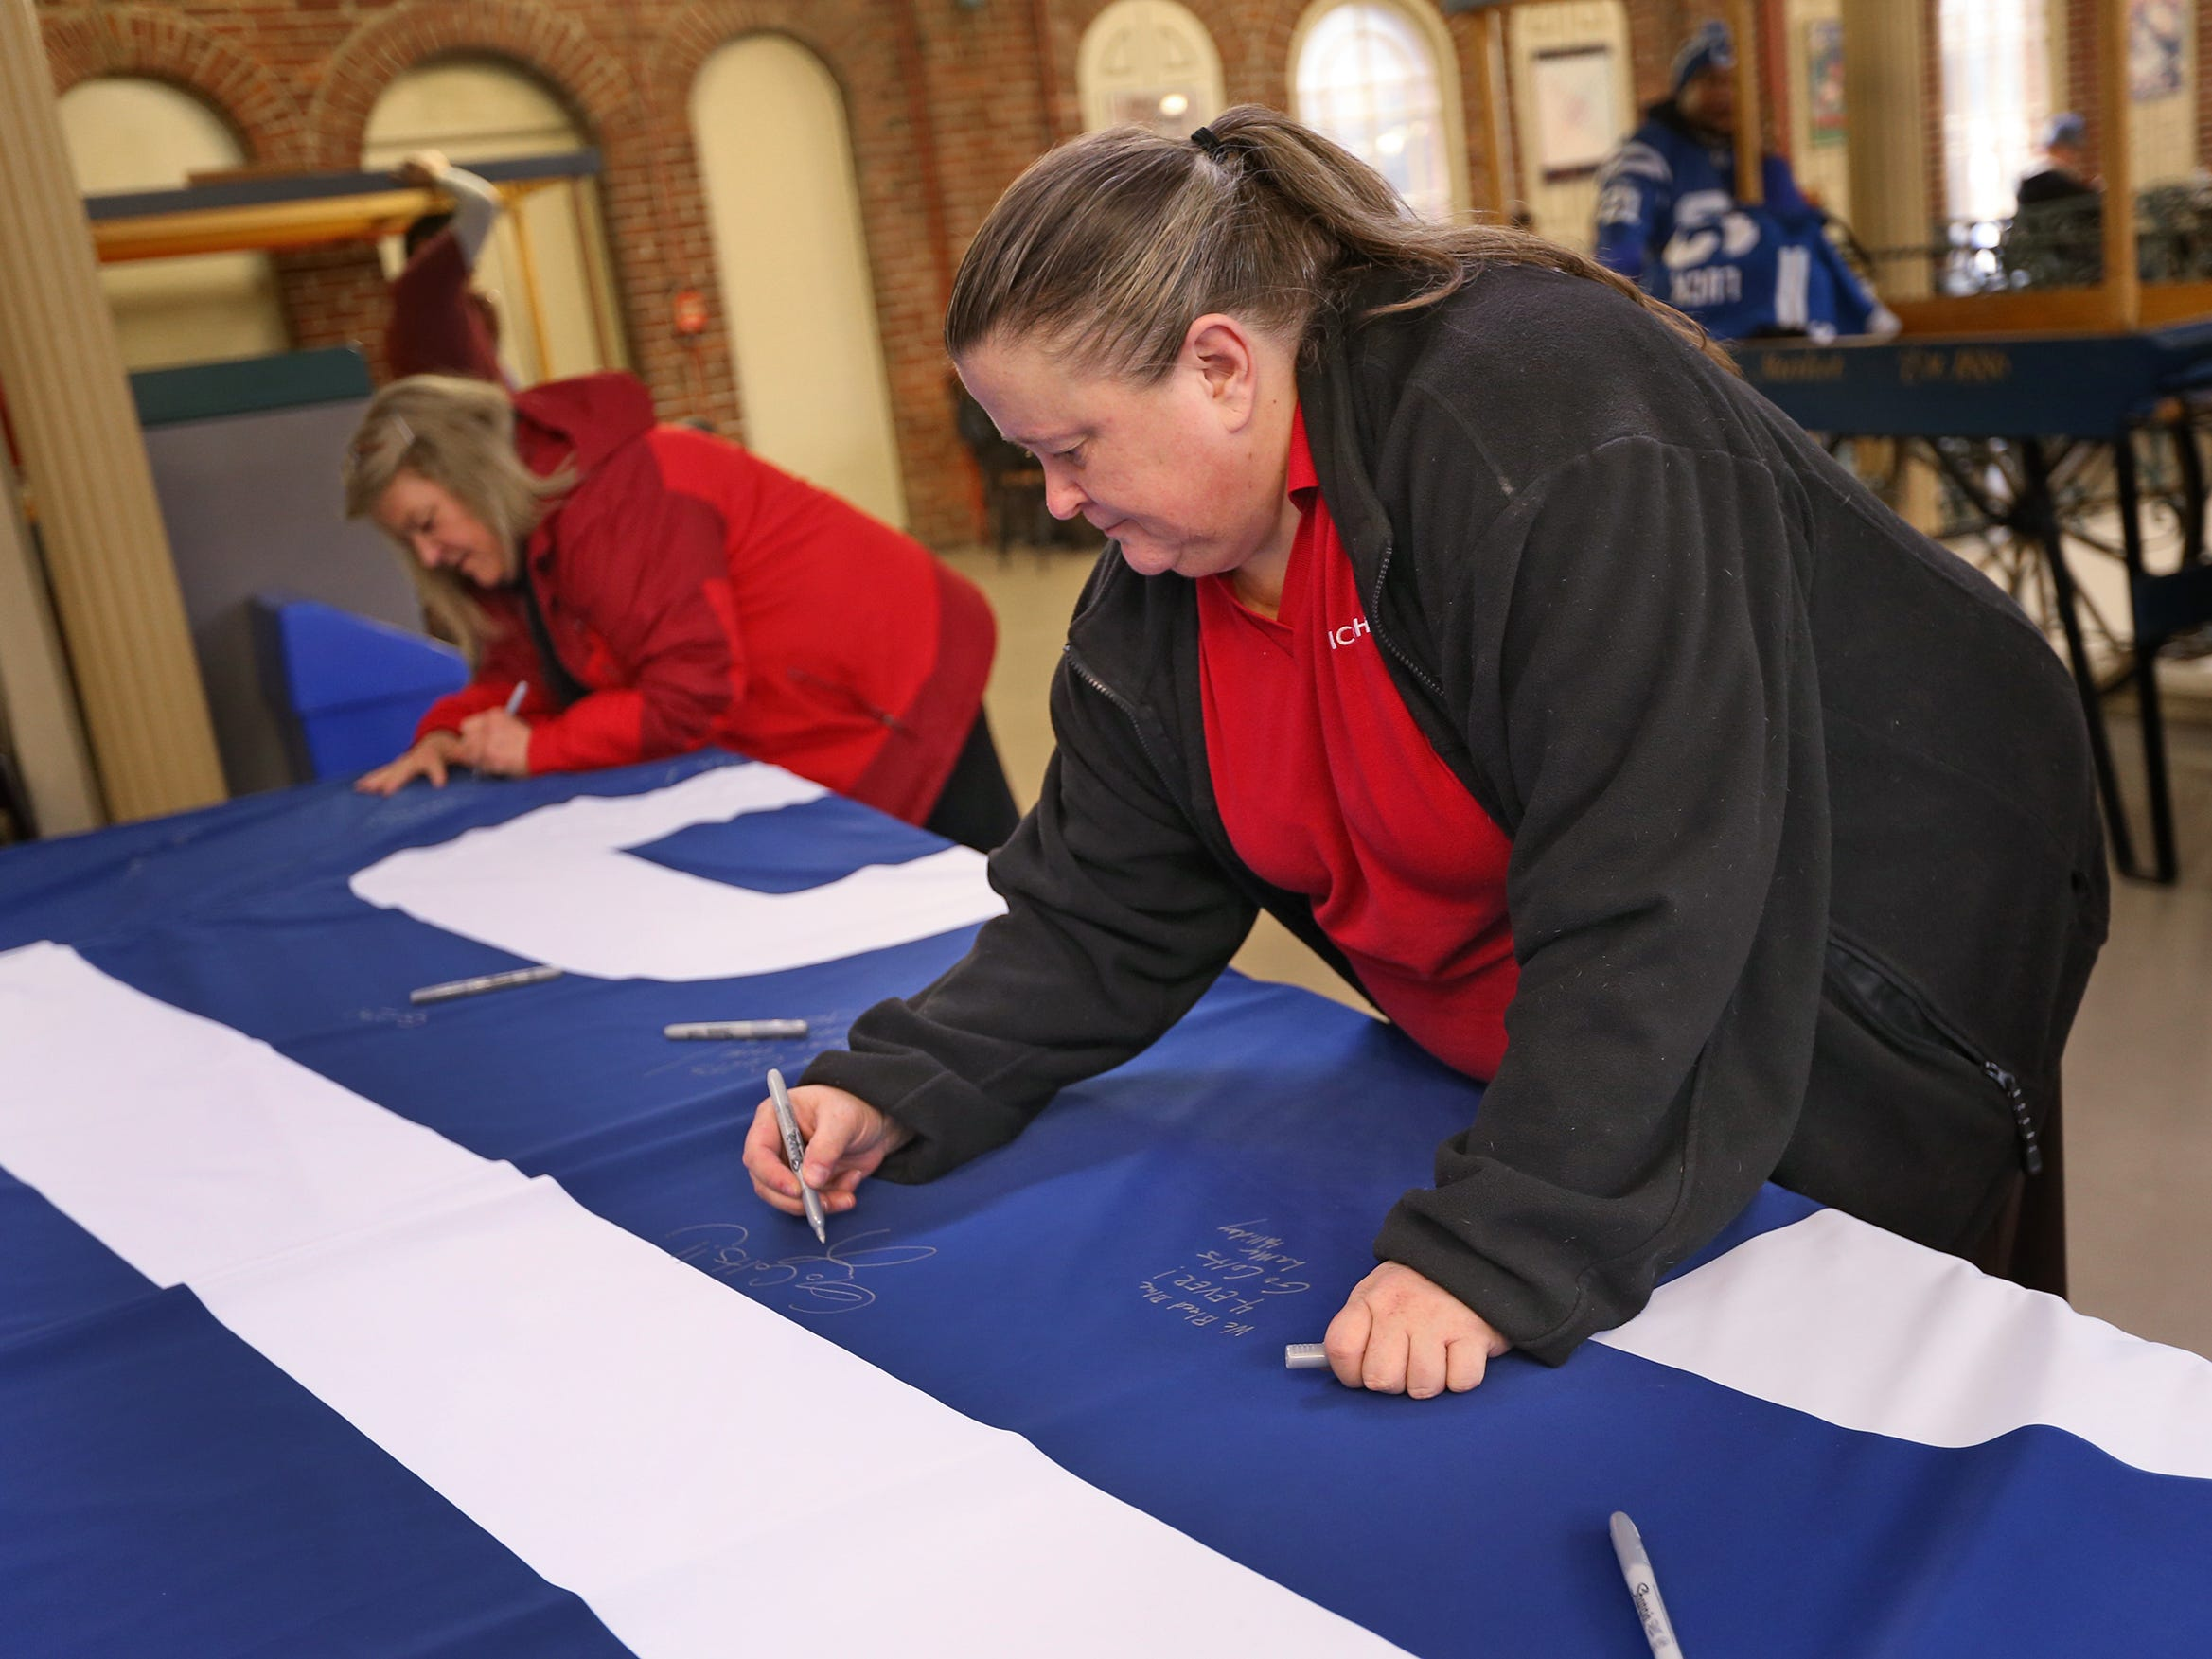 Alicia Scramlin, left, and Lynn Moeller sign a 1-0 banner for the Colts at City Market, Thursday, Jan. 10, 2019.  The banner will be displayed for the team to see at the airport as they head off to their Kansas City playoff game.